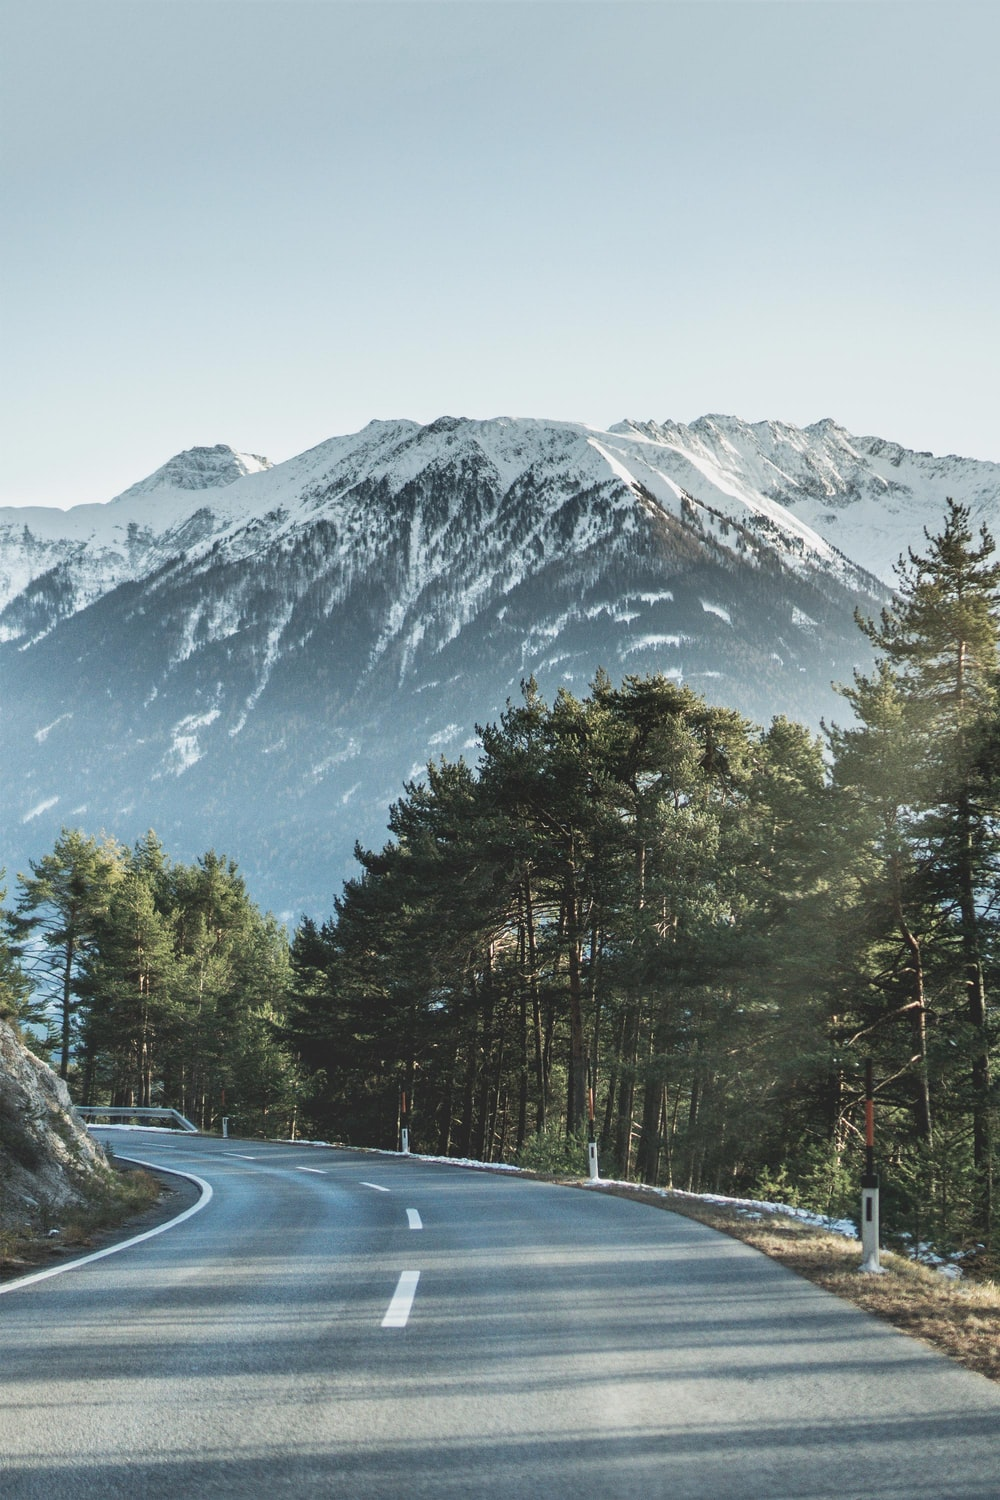 asphalt road beside of green trees in front of mountain covered of snow during daytime